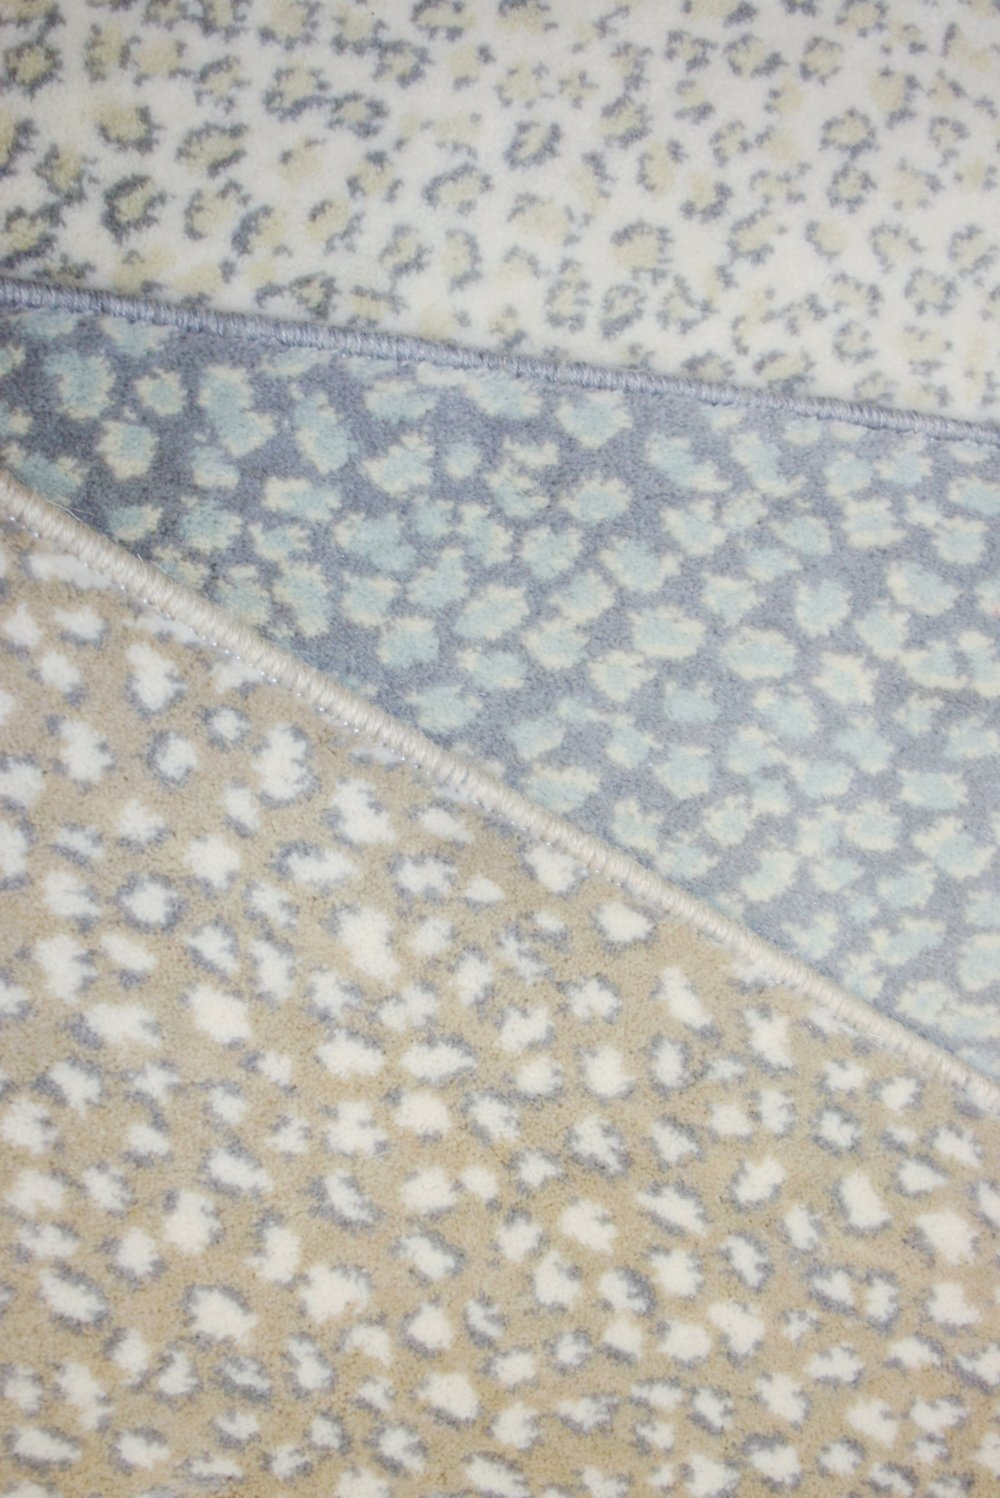 Subtle animal print carpet in pale blues